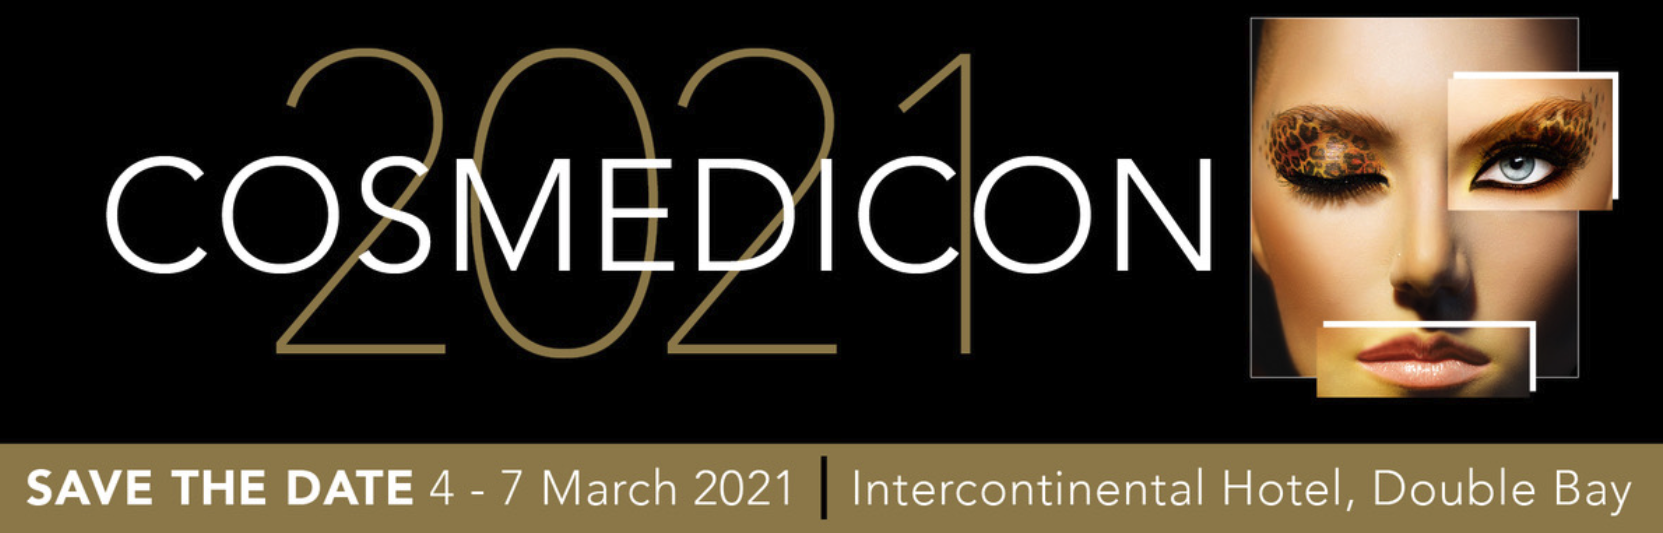 WELCOME TO COSMEDICON 2021 CONFERENCE